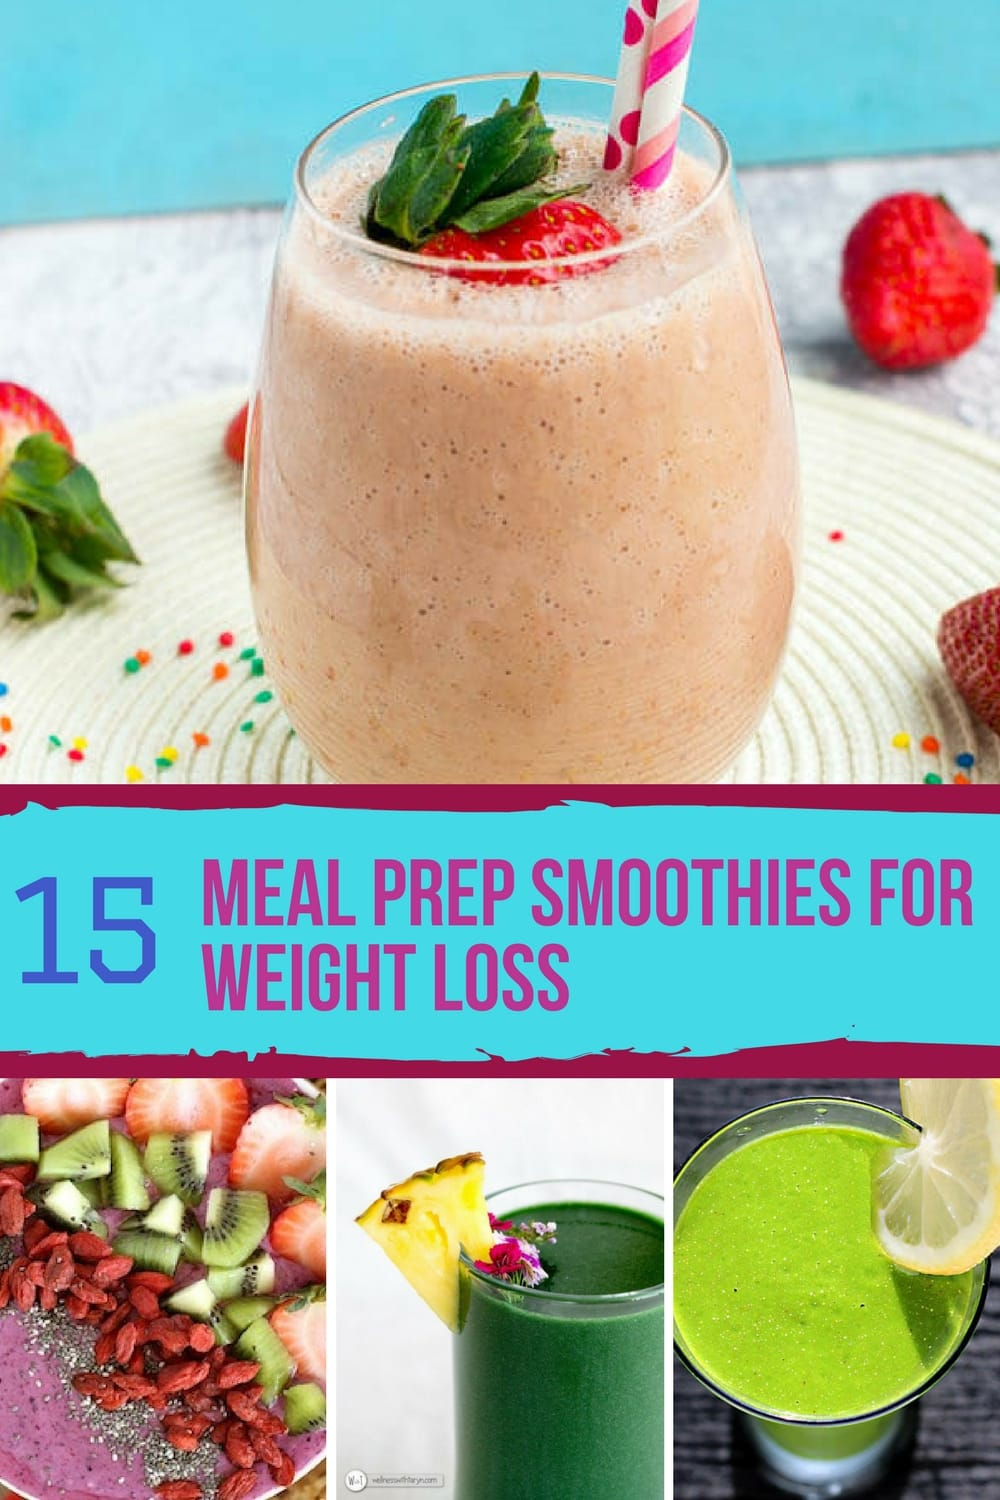 I love these smoothies for a fast and healthy breakfast. These are perfect for getting started with meal prepping. #5 is my favorite!